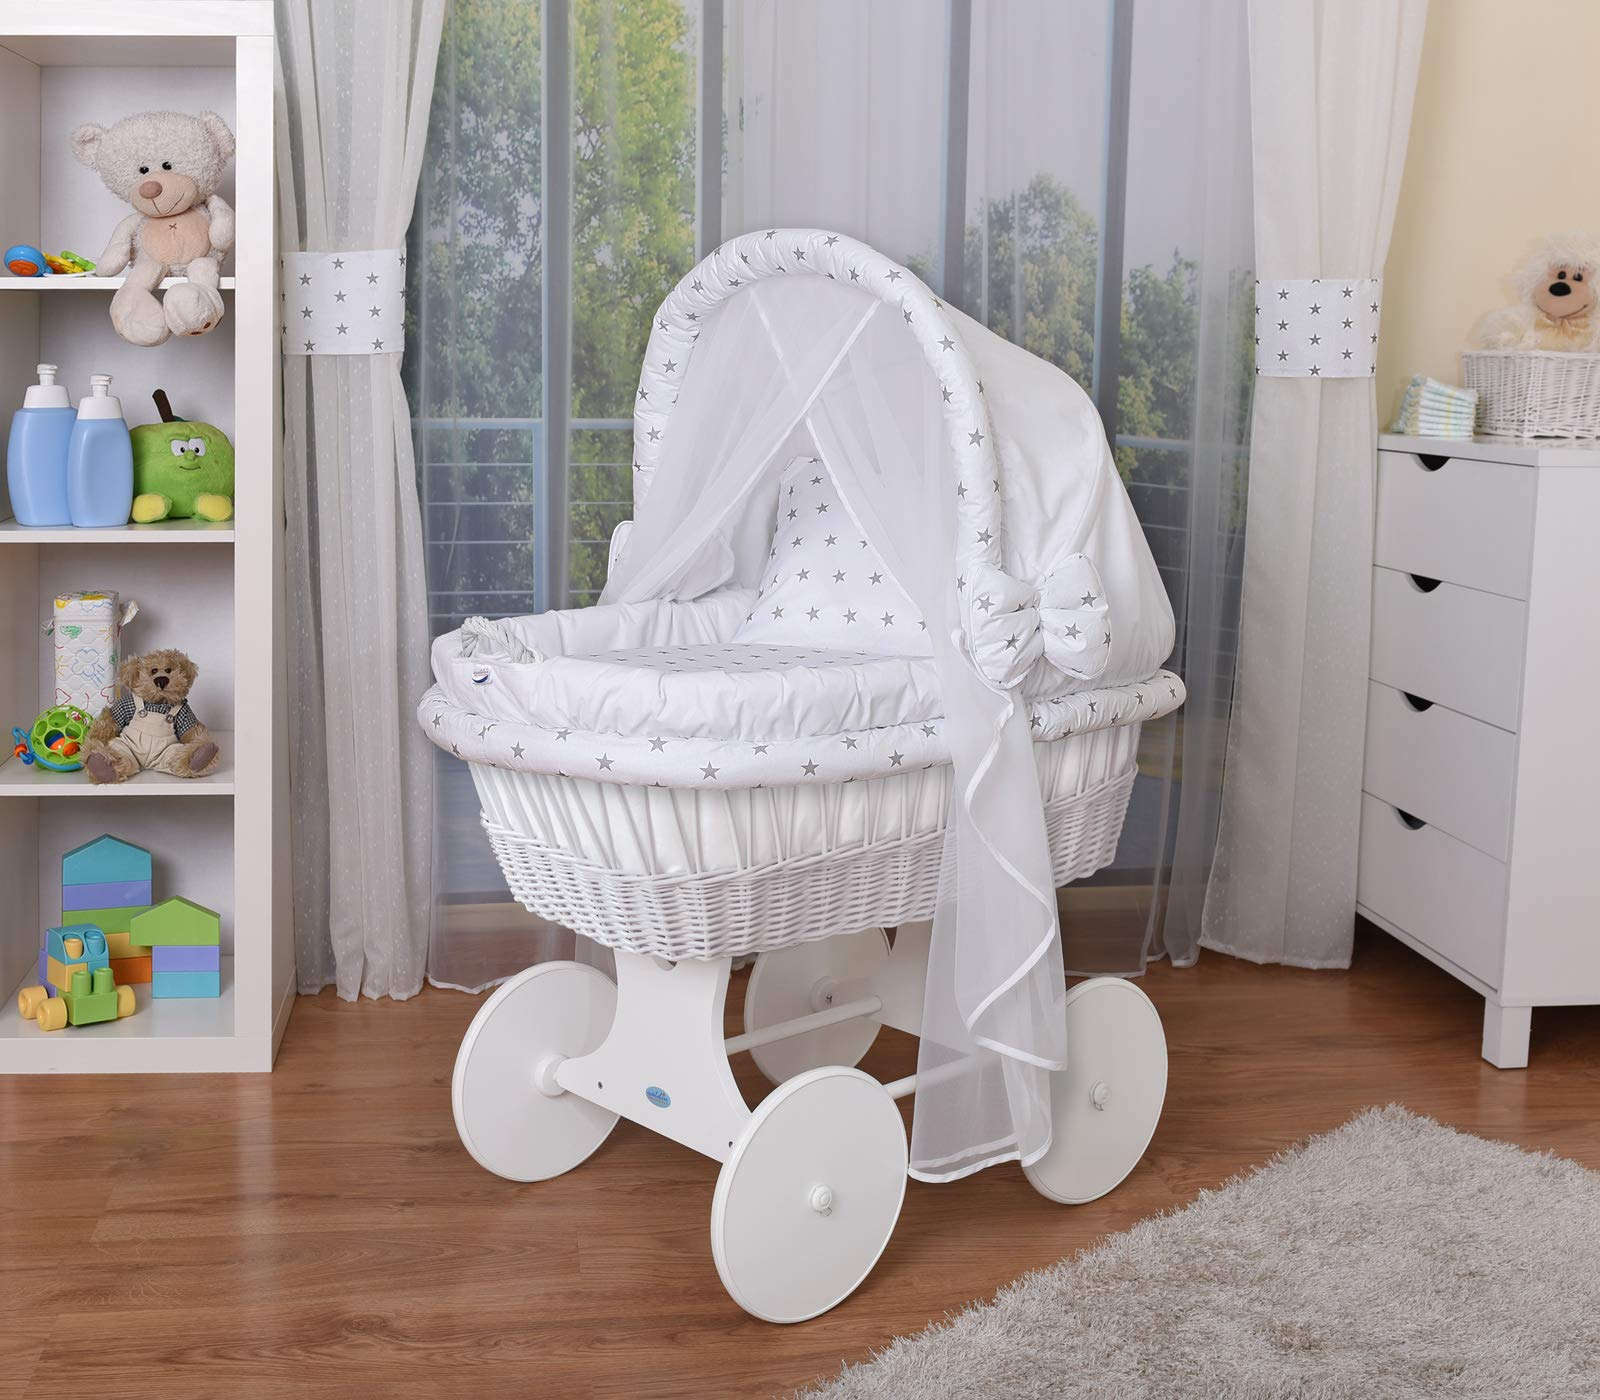 WALDIN Baby Wicker Cradle,Moses Basket,44 Models Available,White Painted Stand/Wheels,Textile Colour White/Grey Stars  For more models and colours on Amazon click on WALDIN under the title Bassinet complete with bedding and stand Certified to safety standard EN 1130-1/2 1